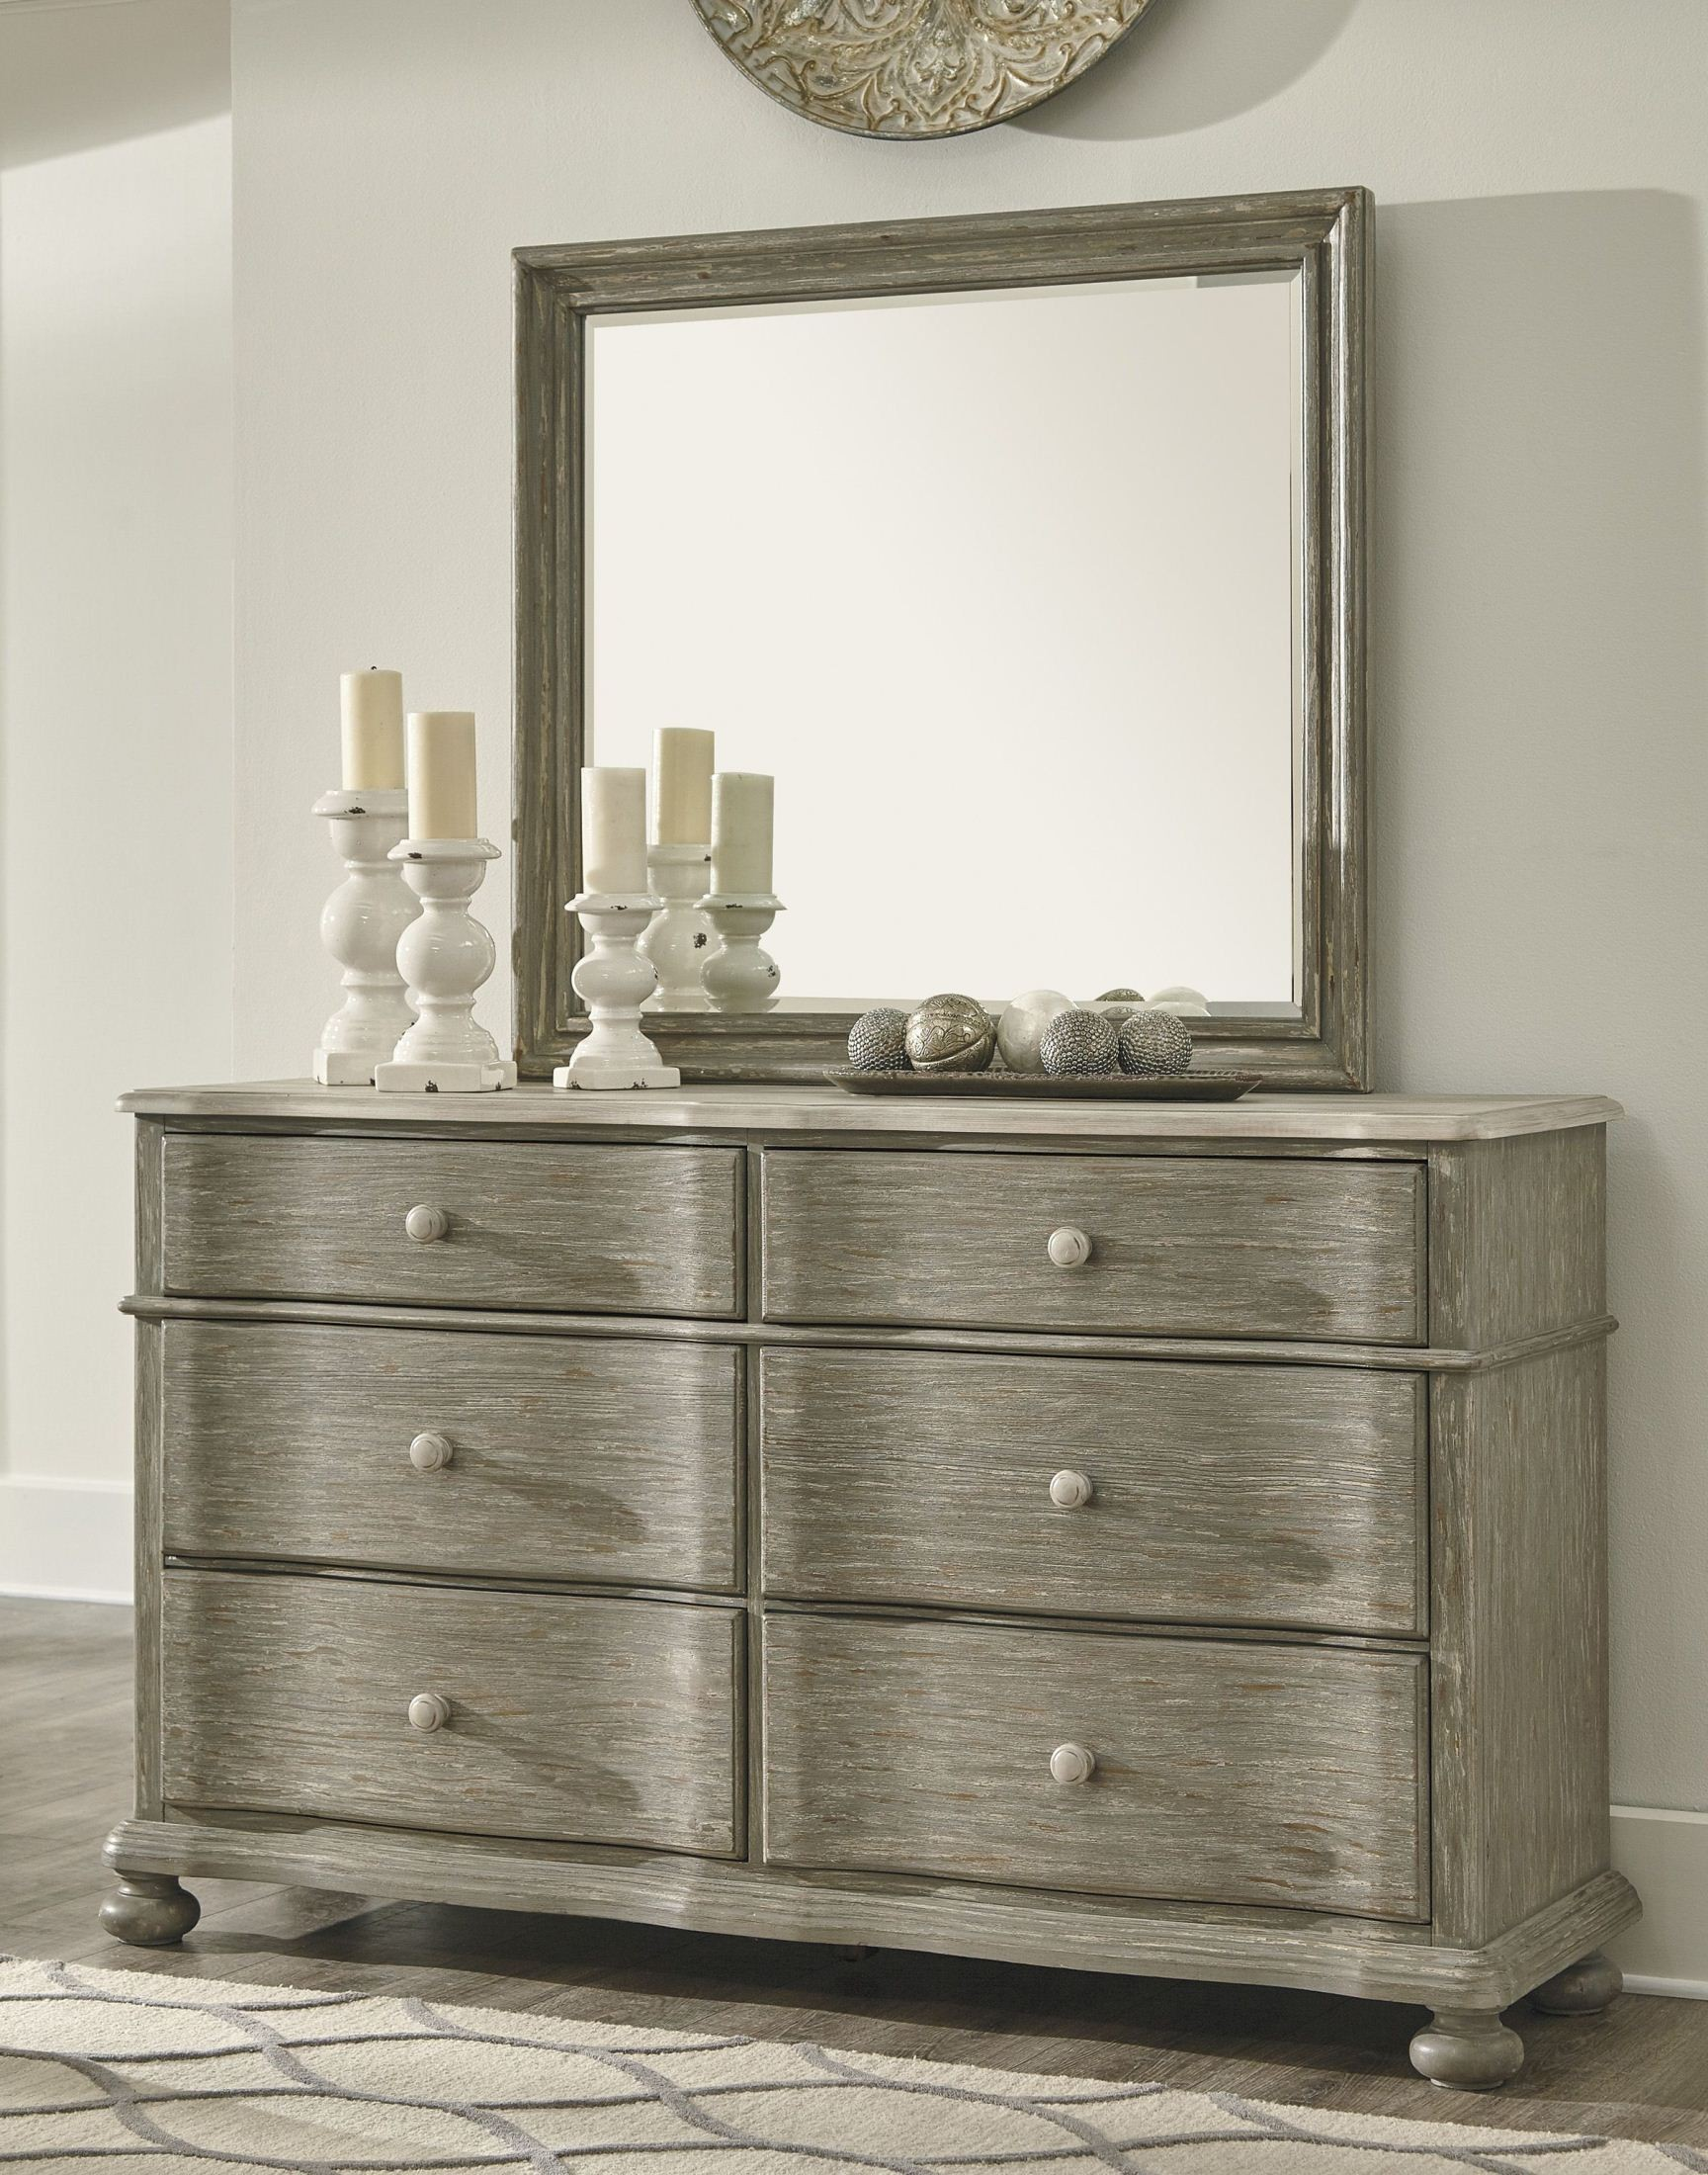 Marleny Gray and Whitewash Bedroom Mirror from Ashley